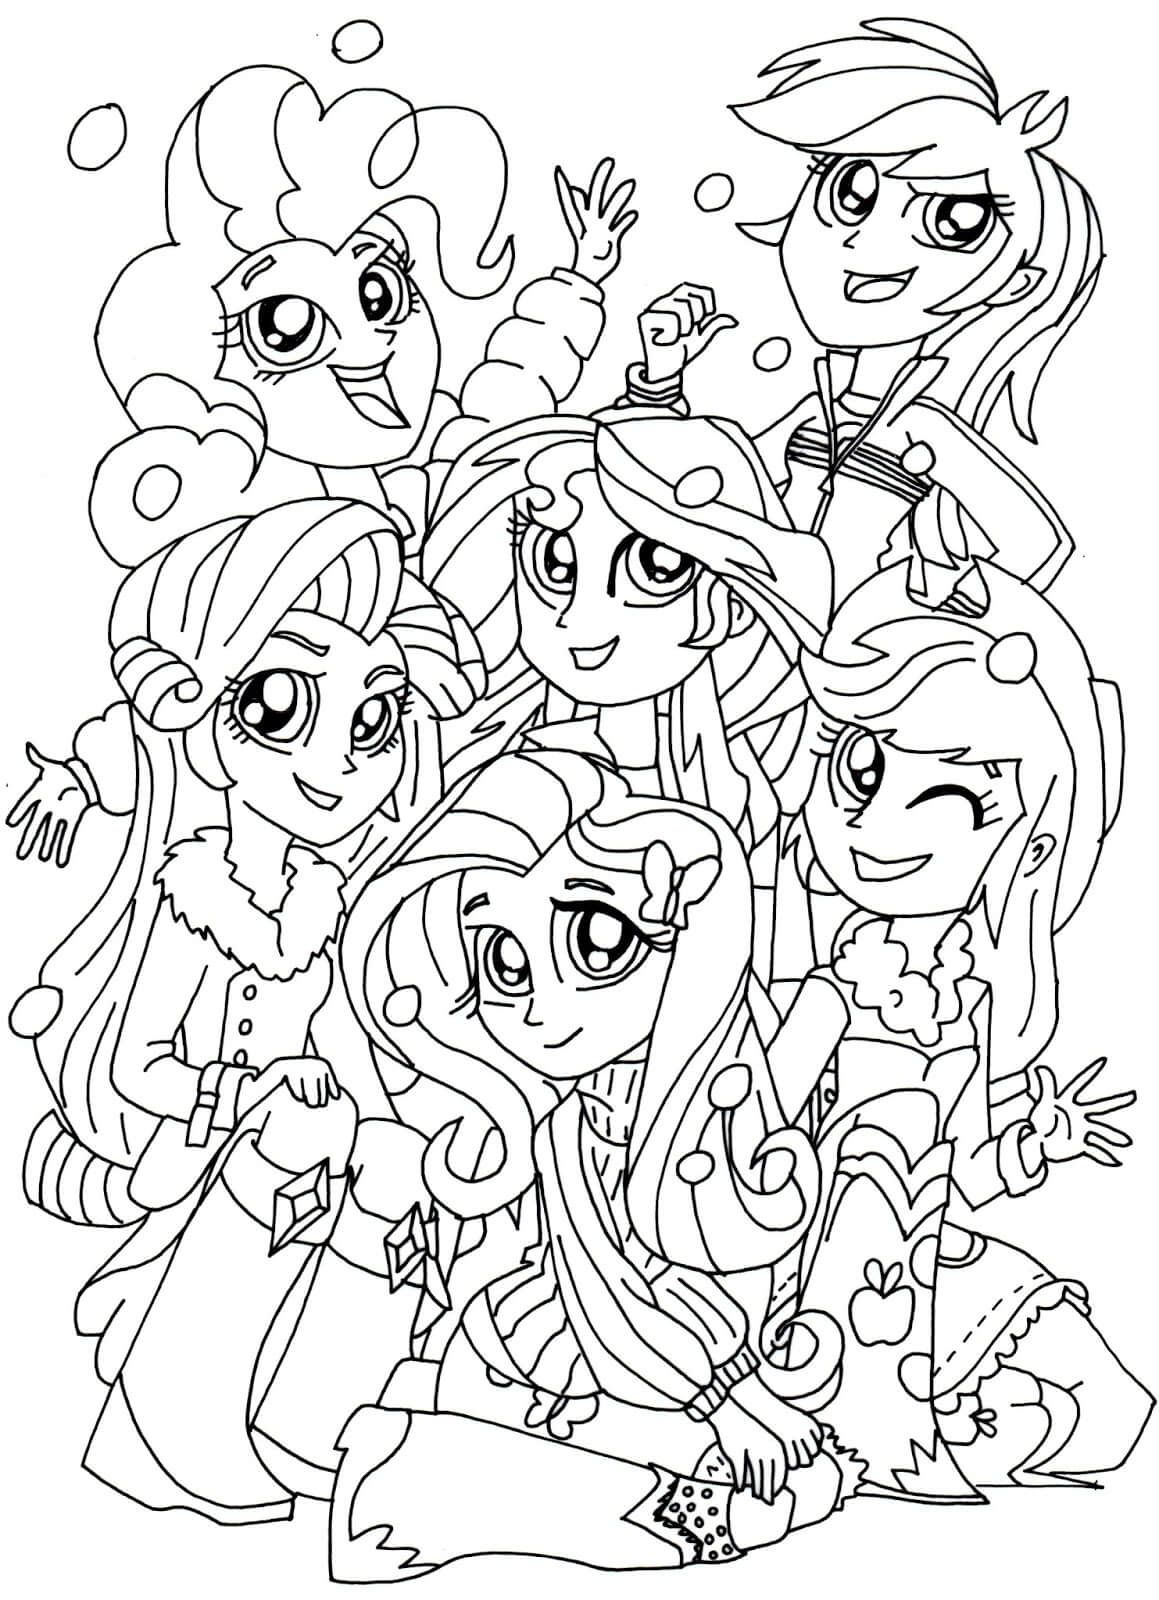 Ausmalbilder My Little Pony Pinkie Pie : My Little Pony Equestria Girls Coloring Pages Equestria Girls